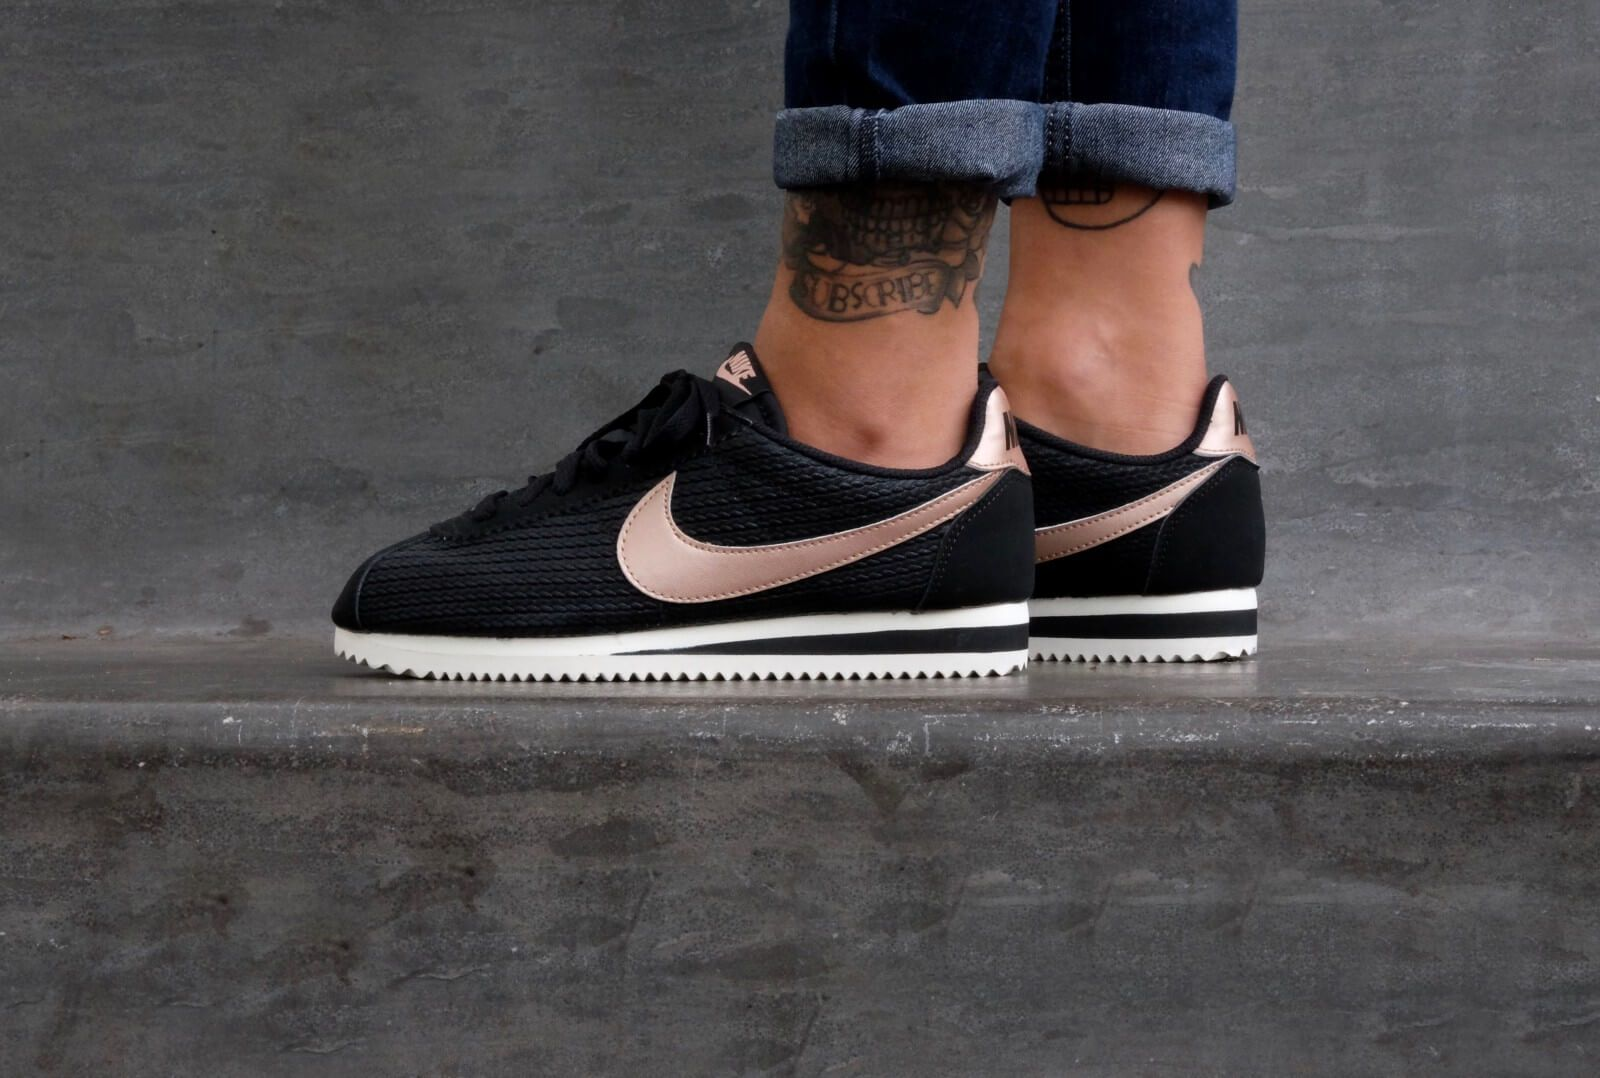 Nike WMNS Classic Cortez Leather Lux Black Metallic - Red - 861660 ... 1fe8d5cf23